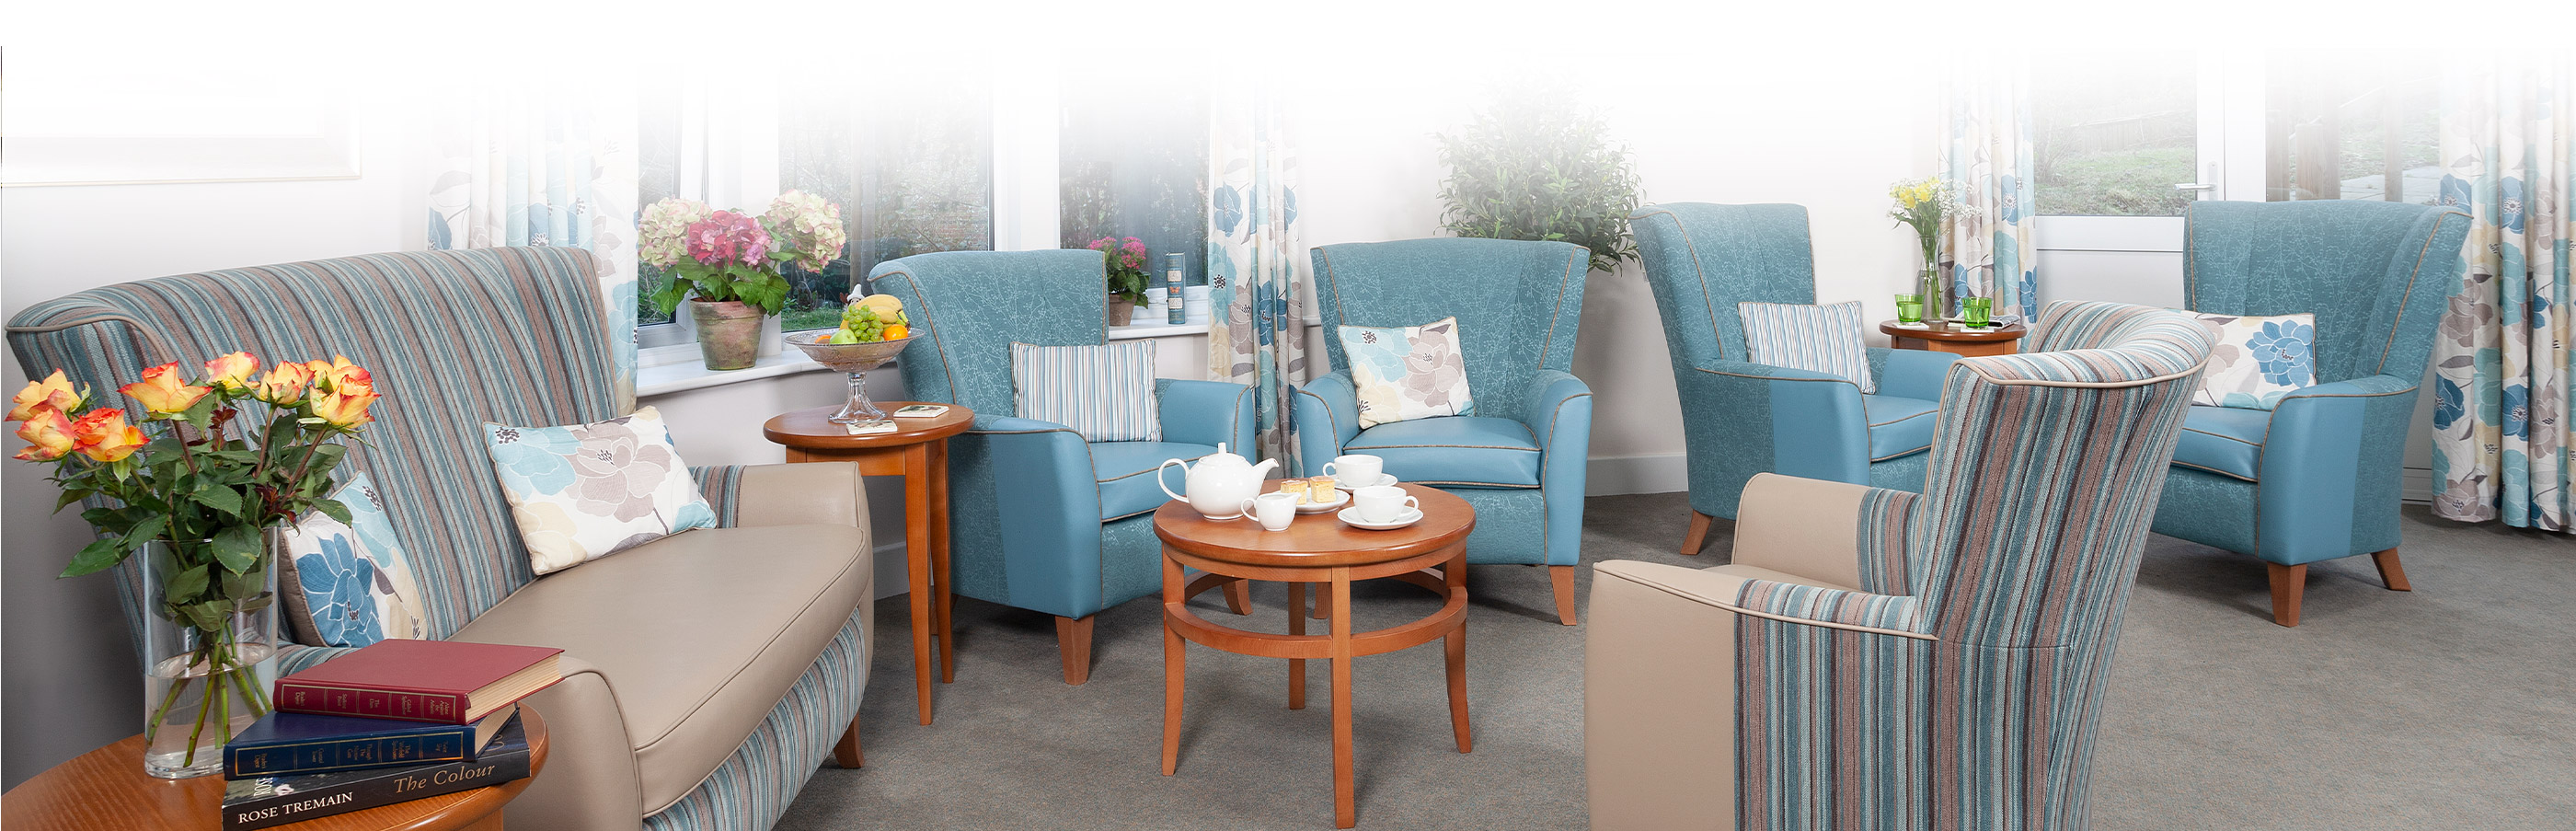 Lounge area with blue chairs at Cedar view care centre croydon